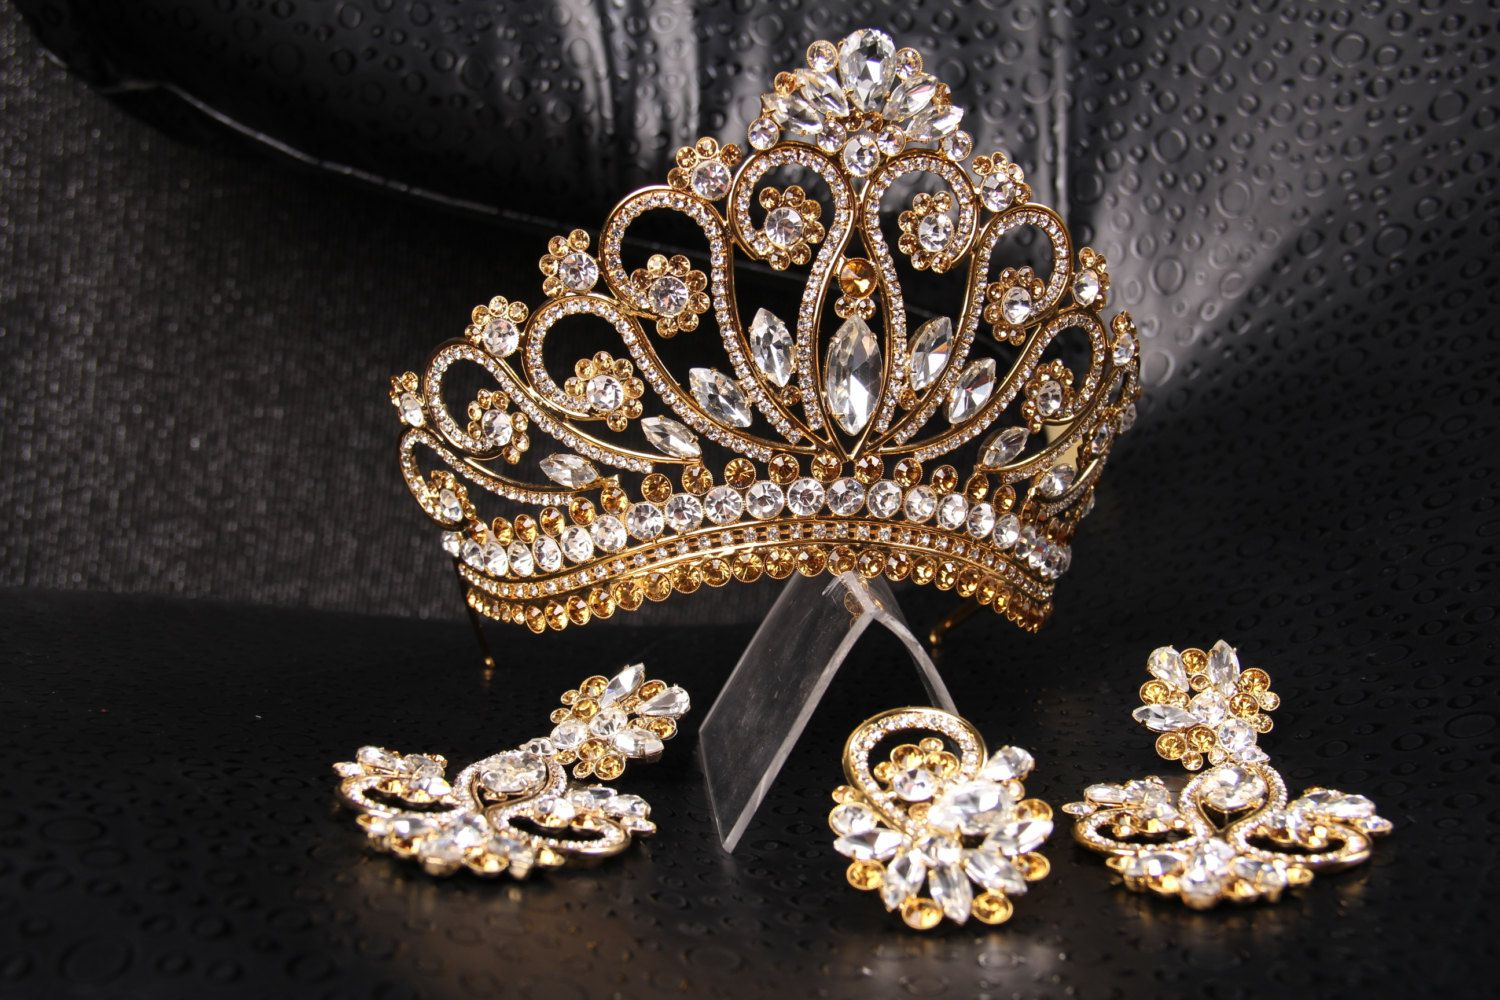 Unique Handmade Princess Tiara Crown Wedding Crystal Gold Hand Made For Order Inlaid With Brown Swarovski Crystals